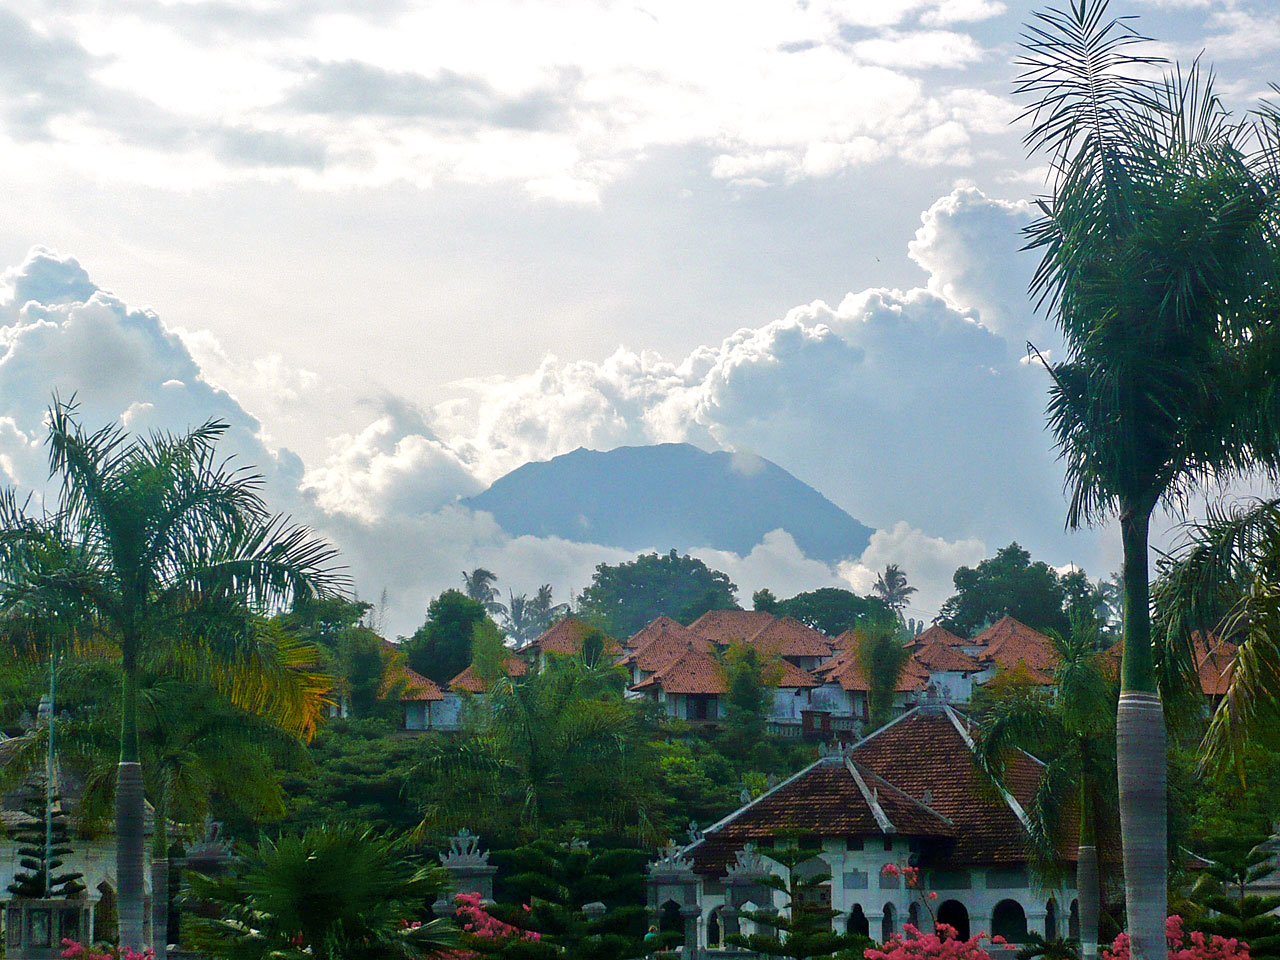 View of Gunung Agung at the Water Palace in Ujung